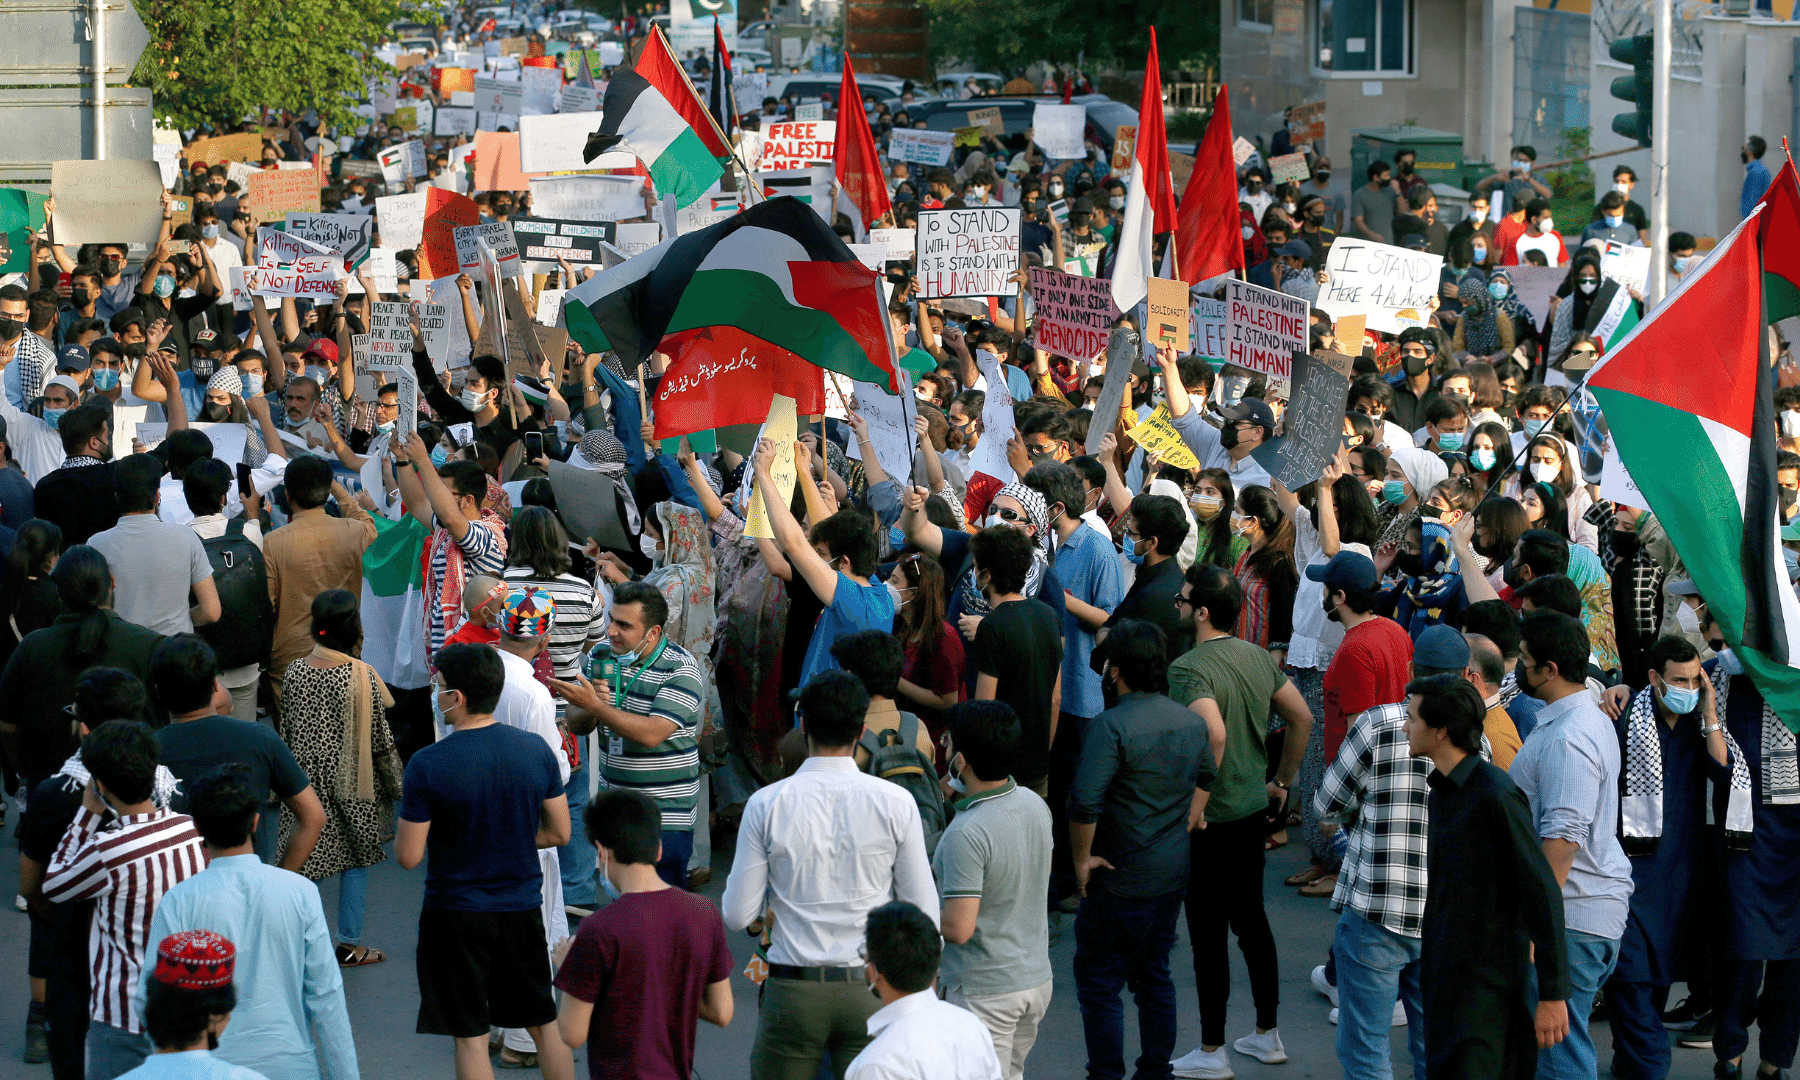 People take part in a rally in support of Palestinians organised by civil society organisations, in Islamabad on Monday. — AP